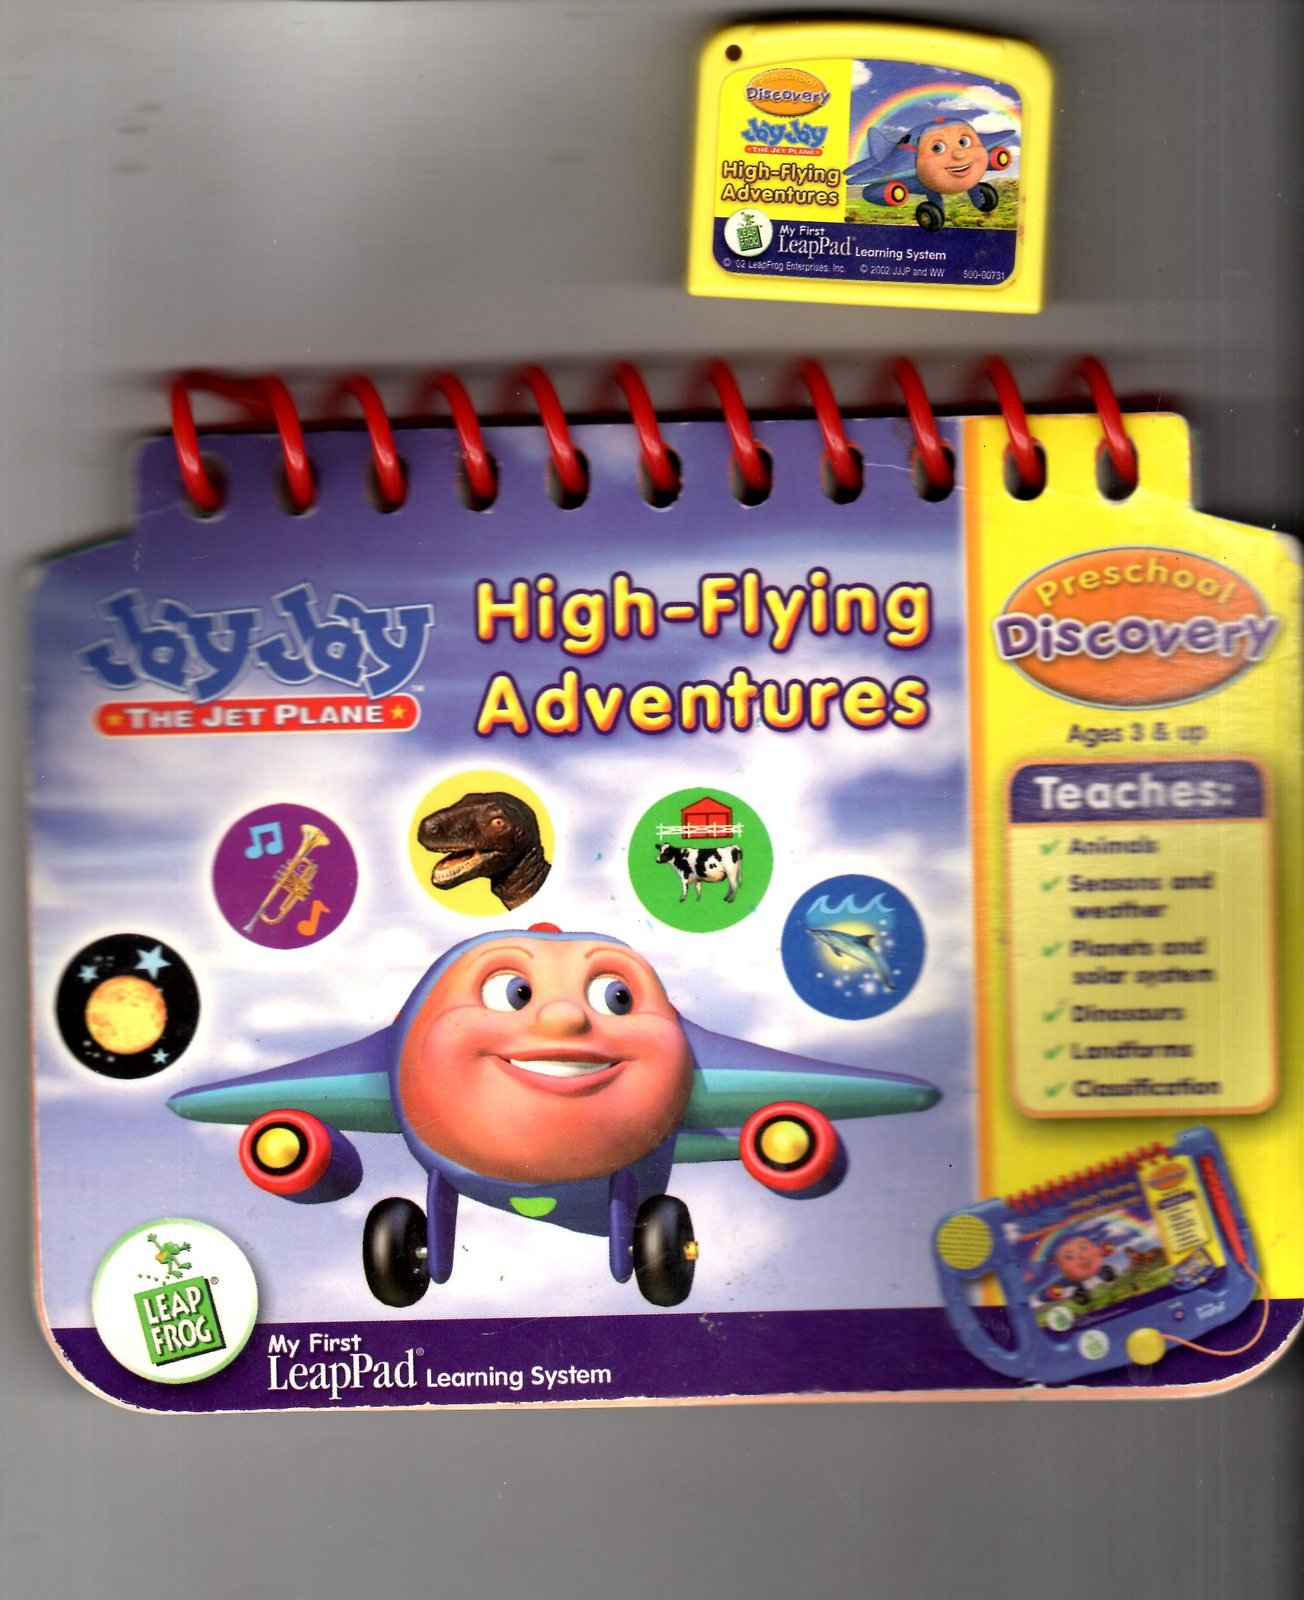 Leap Frog - My First LeapPad -  The Jet Plane High-Flying Adventures